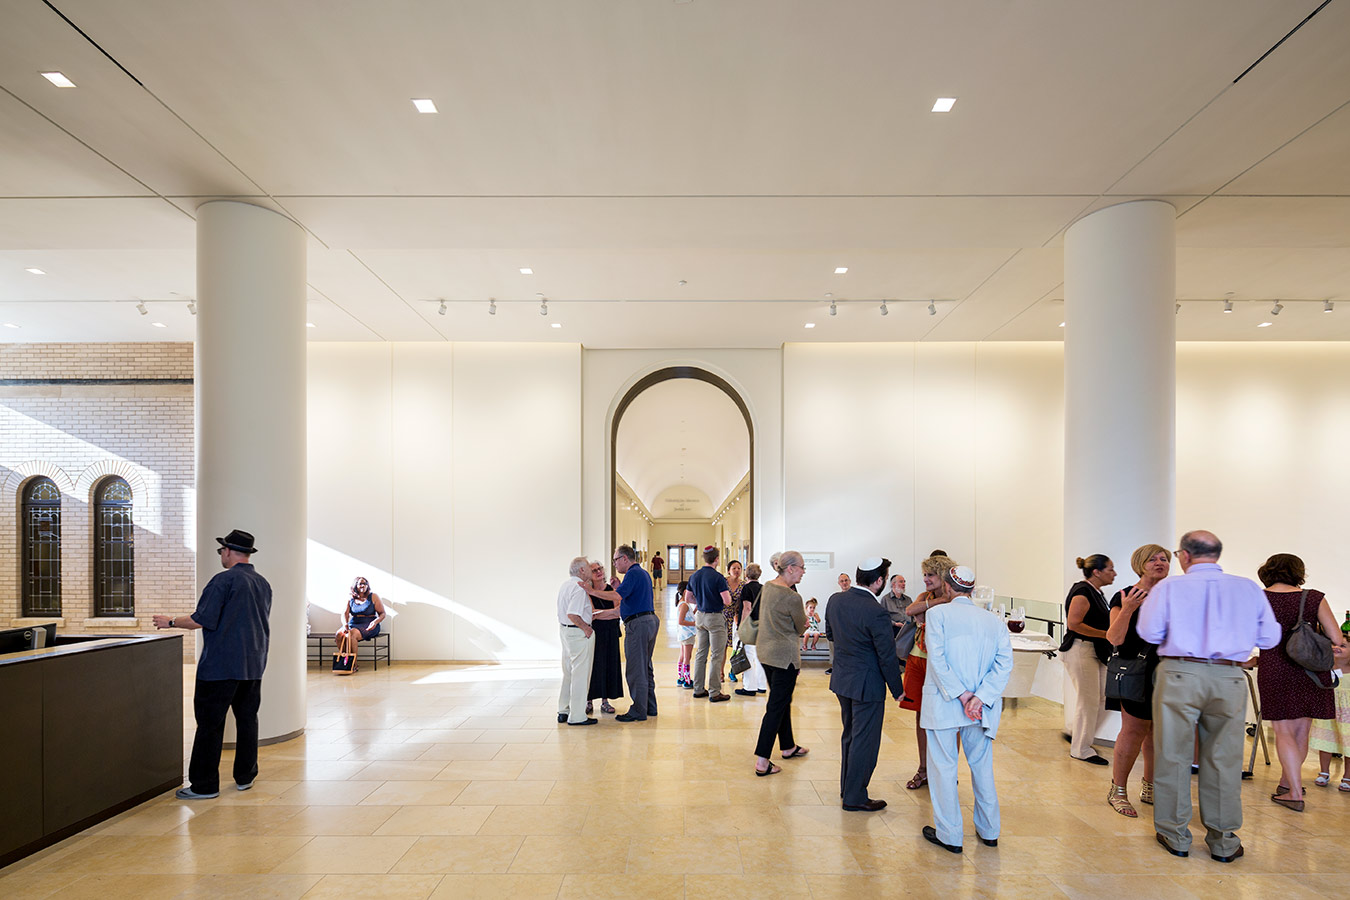 <p>The new southern entrance's lobby provides direct connections to the historic Thalhemier Lobby, as well as all of the synagogue's religious, educational, meeting, and social spaces. <br><small>©James Ewing Photography</small></p>